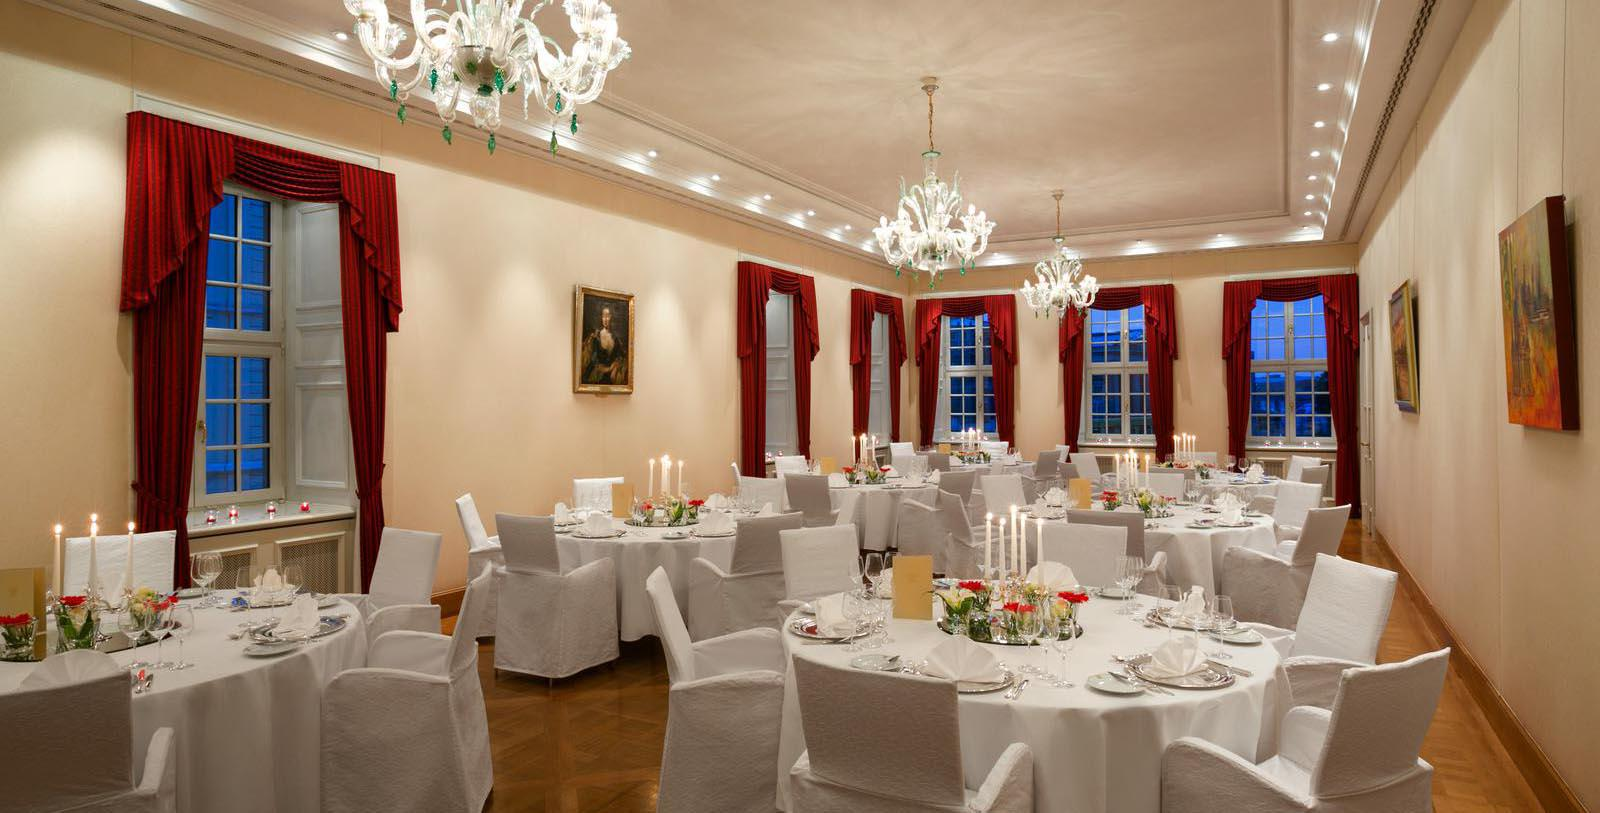 Image of Meeting Room Banquet, Hotel Taschenbergpalais Kempinski Dresden, Germany, 1700s, Member of Historic Hotels Worldwide, Experience